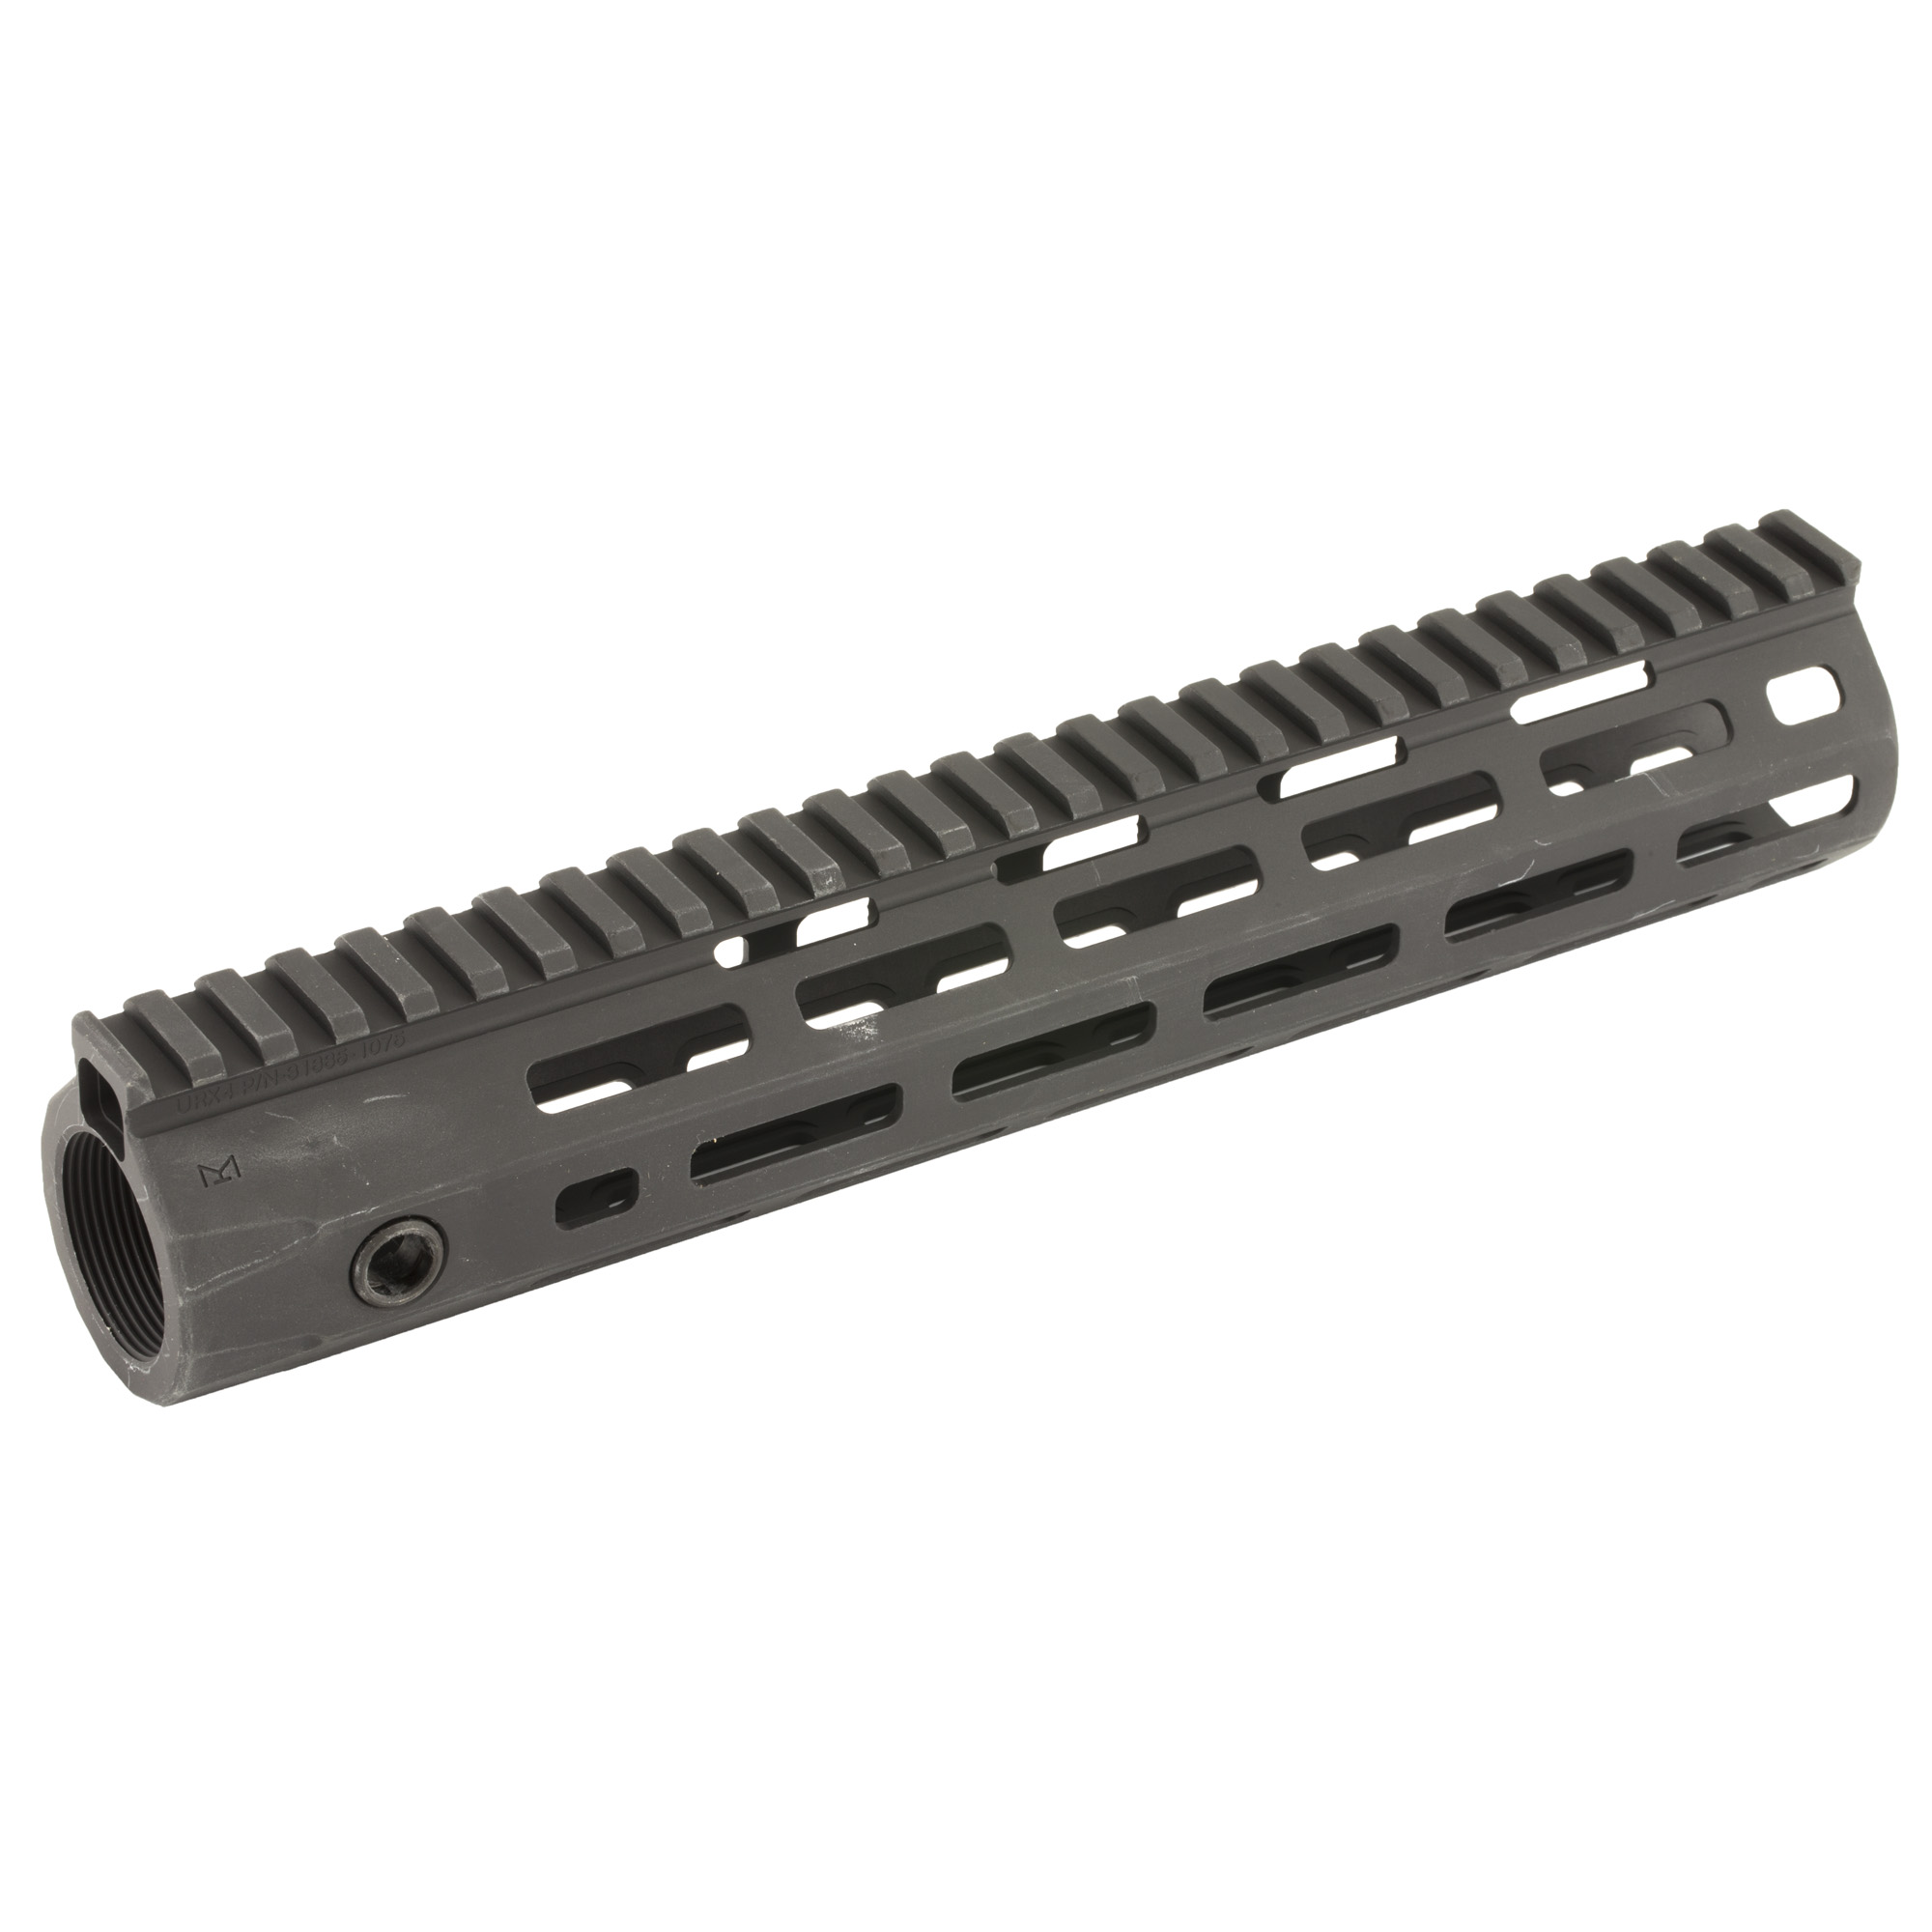 """Knights Armament Co.'s URX 4 10.75"""" M-LOK Forend Assembly Kit is a fully modular design that utilizes the revolutionary M-LOK accessory mounting system. The URX 4 Rail is stronger and more stable than previous URX designs due to its one-piece construction. It is also lighter due to its Integral Barrel Nut (IBN) system of attachment. The IBN system allows the rail itself to act as the barrel nut when torqued onto the rifle"""" completely eliminating the need for a separate steel barrel nut. M-LOK accessories may be mounted anywhere along the URX 4's length"""" making it one of the most user configurable designs on the market."""